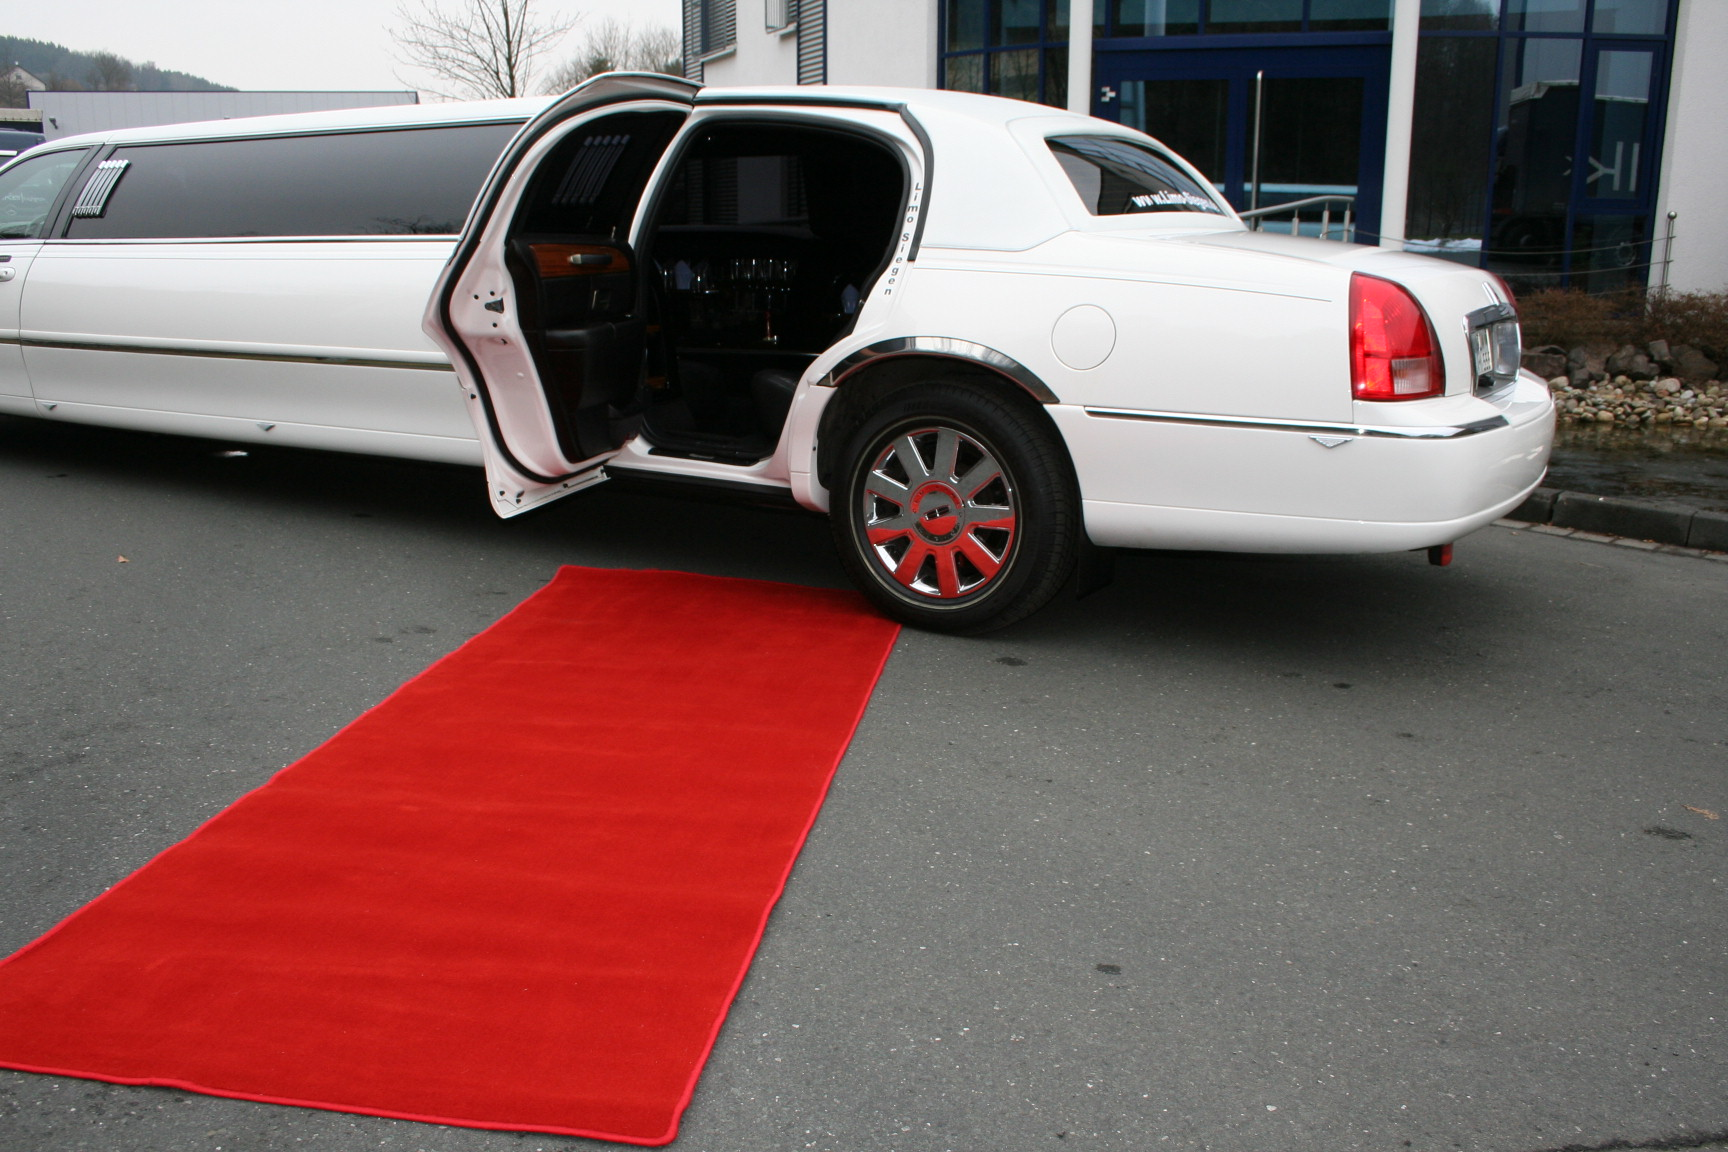 Limousine Roter Teppich Roter Teppich